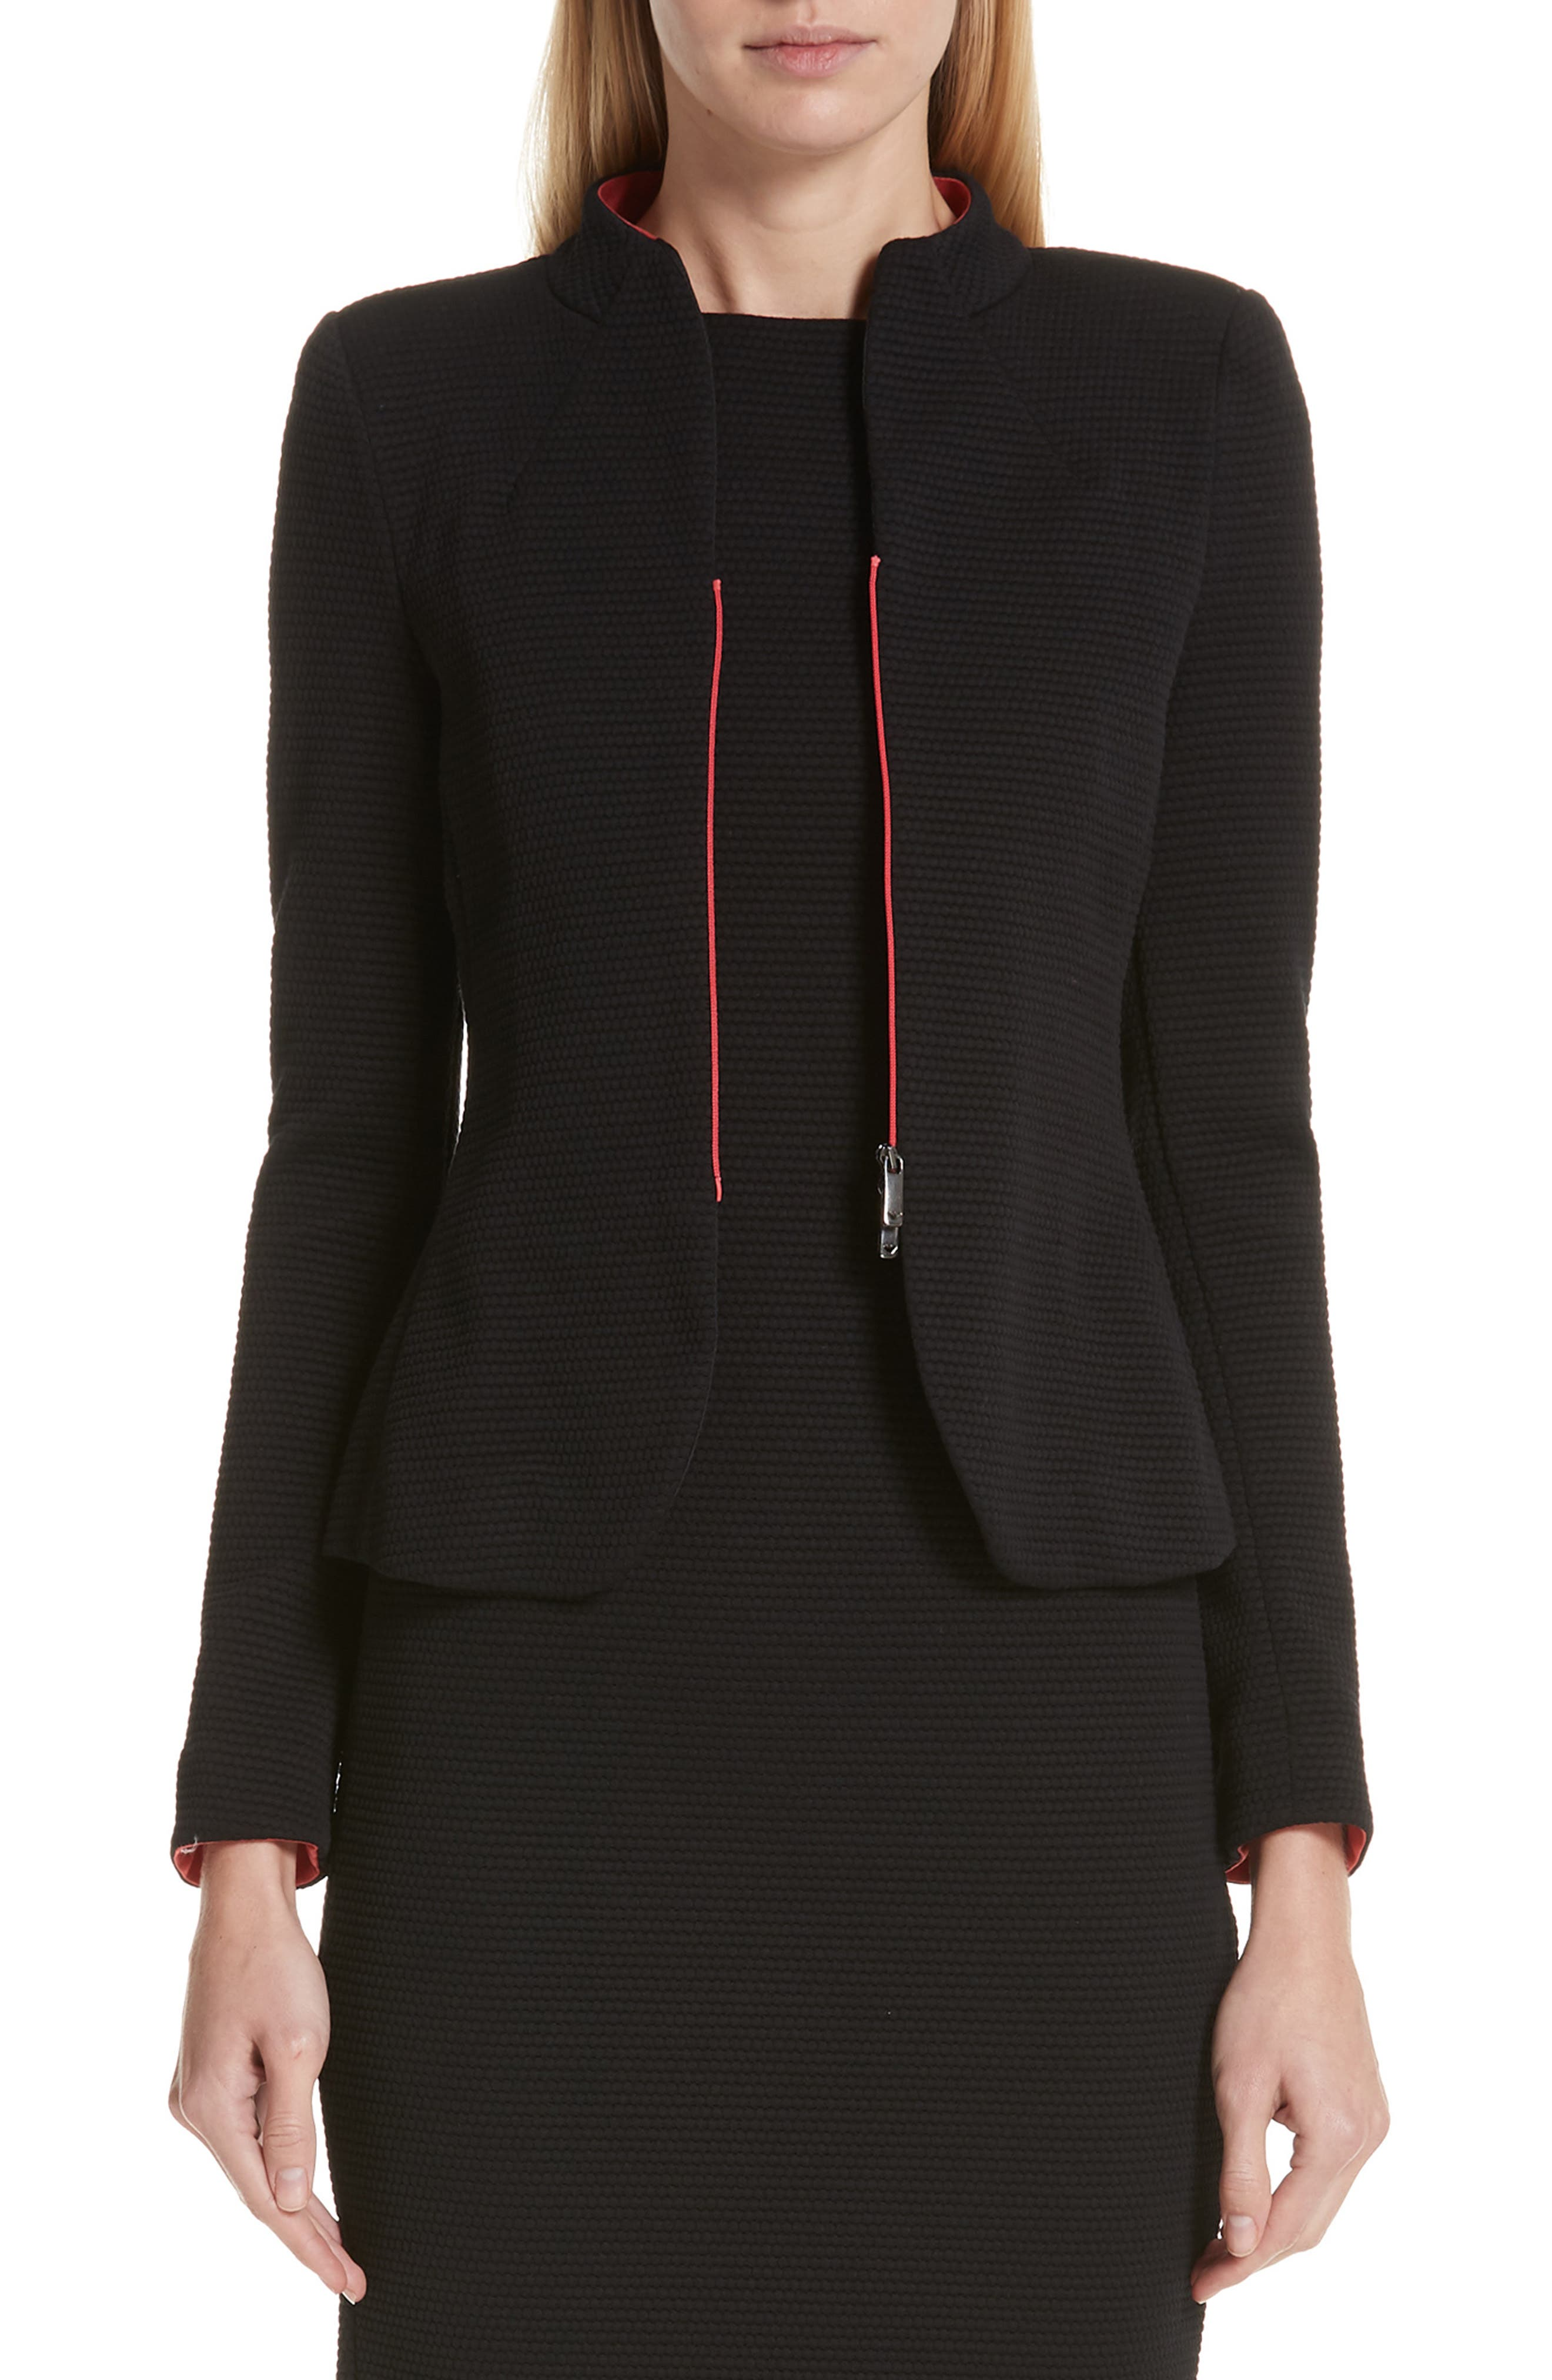 Zip-Front Textured Jersey Jacket in Black from ARMANI.COM